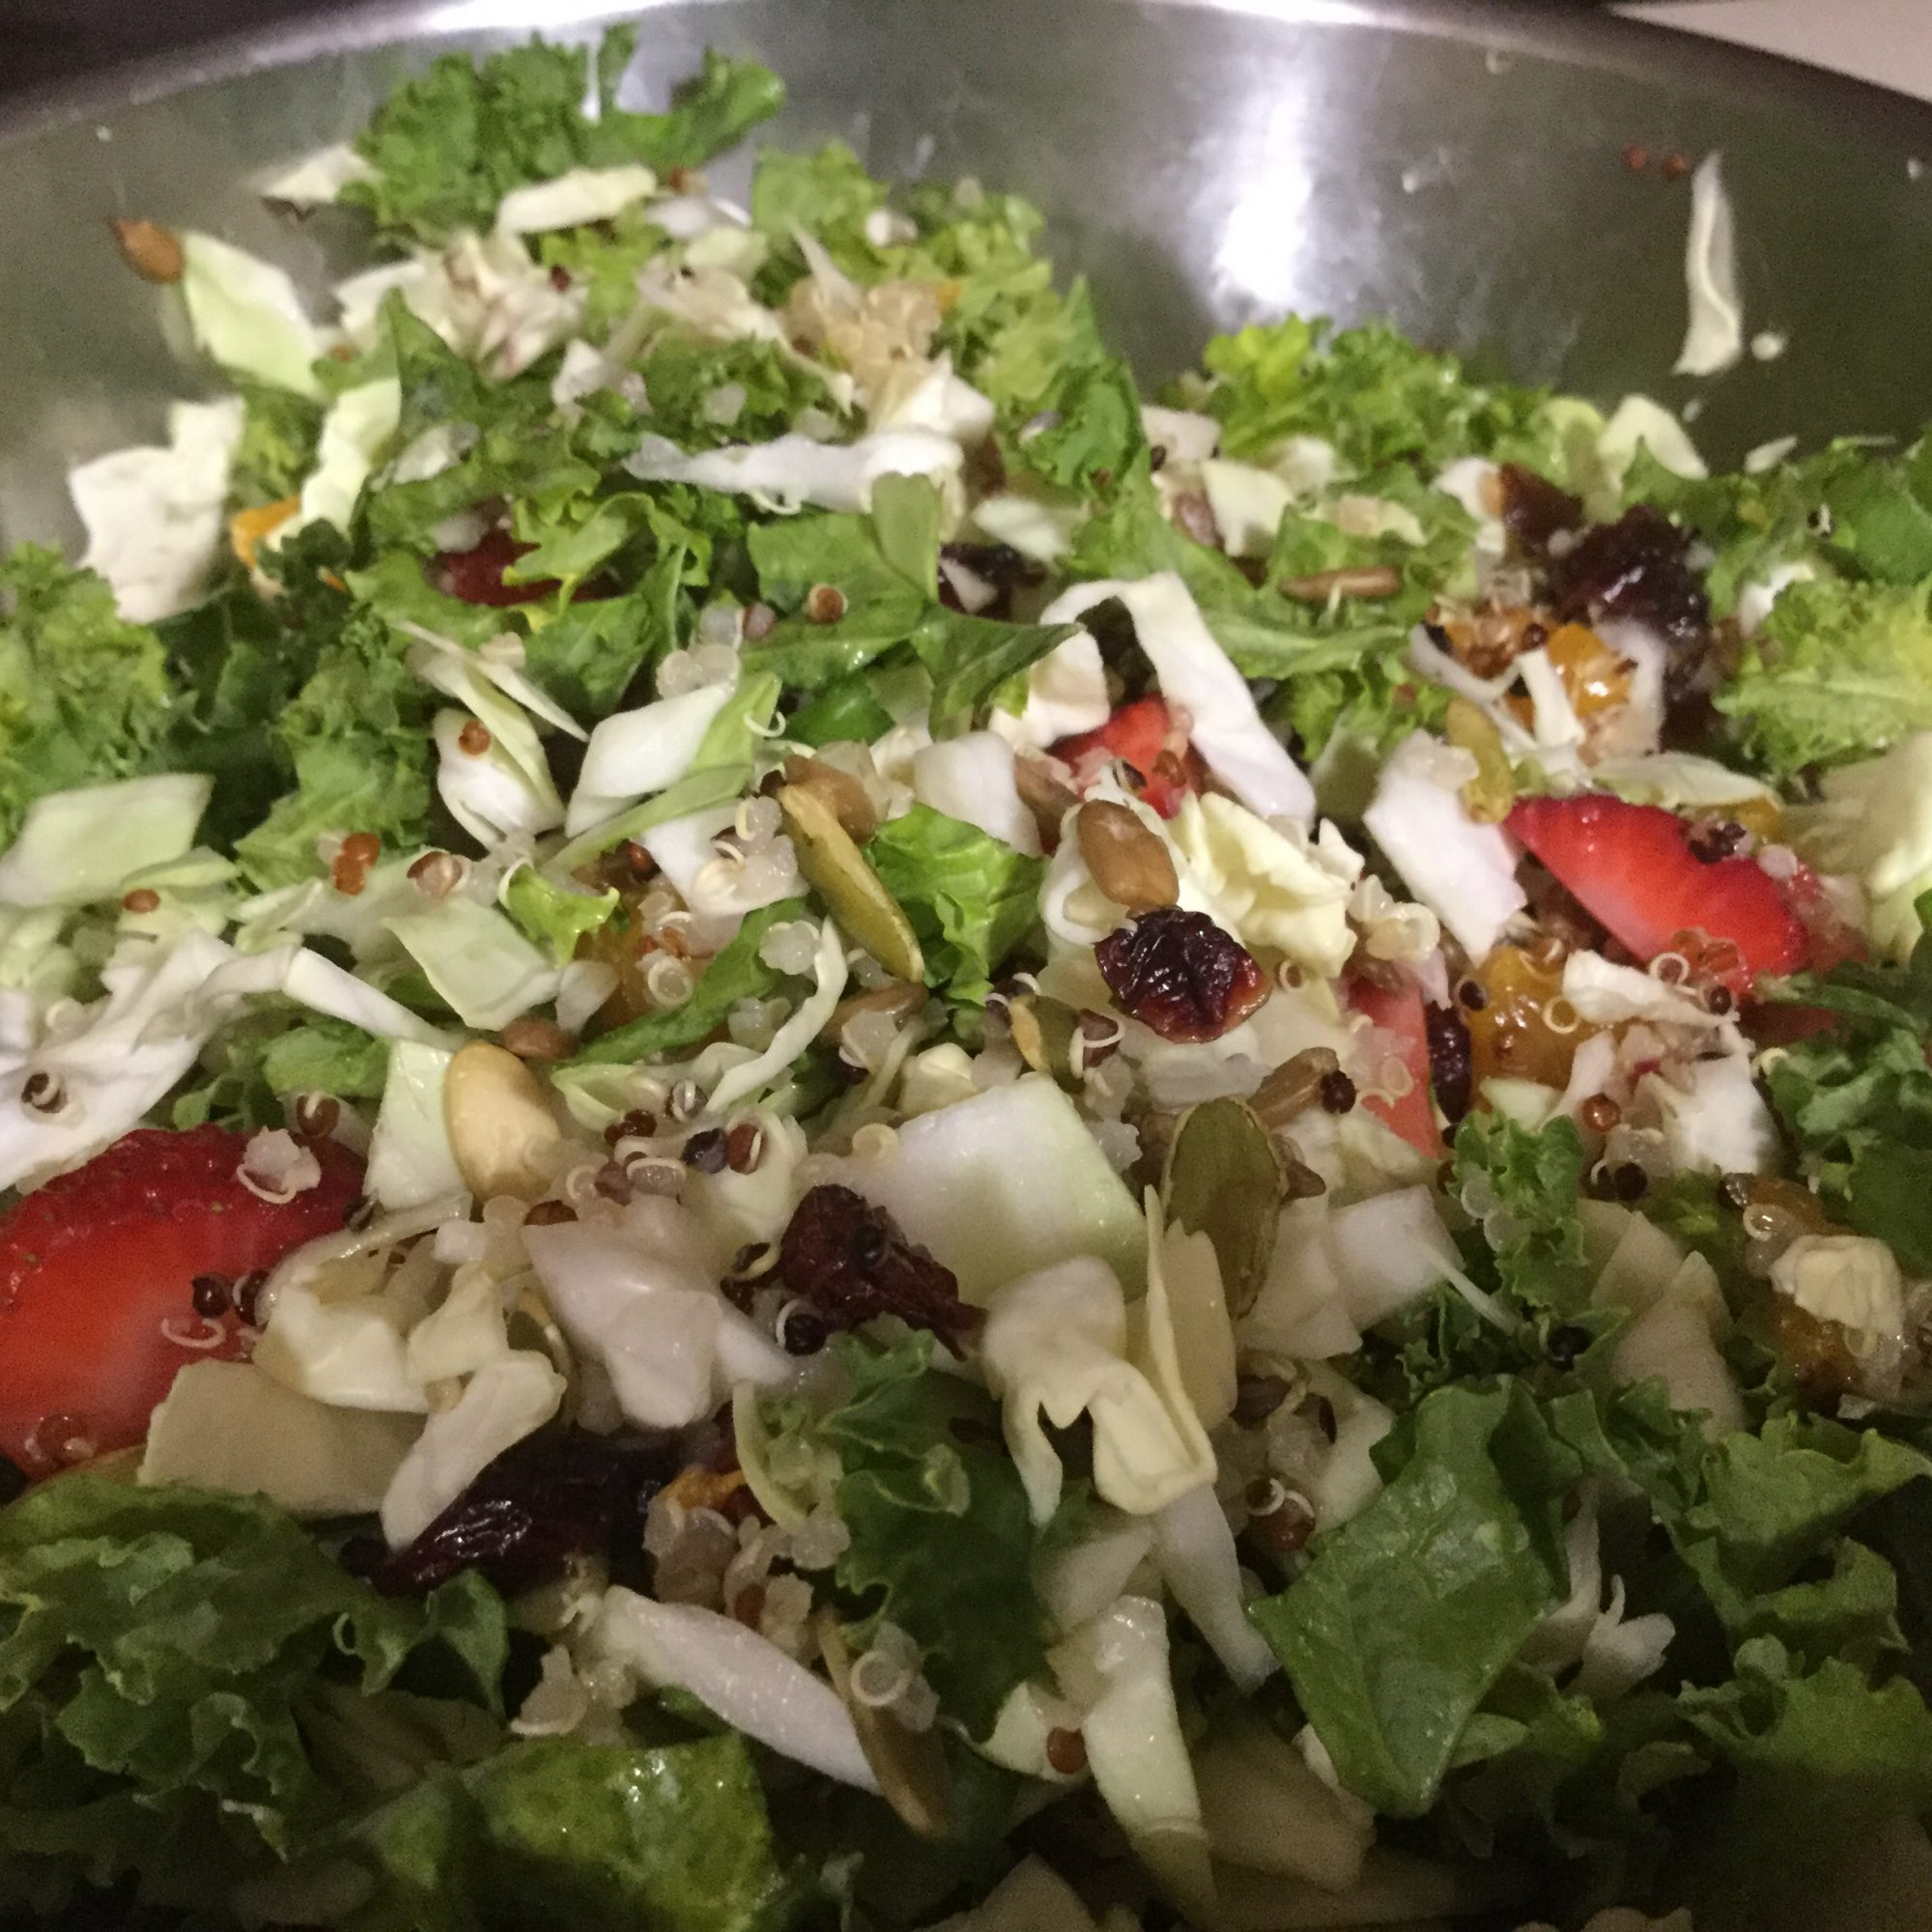 Kale, Cabbage, and Brussels Sprout Salad in a mixing bowl